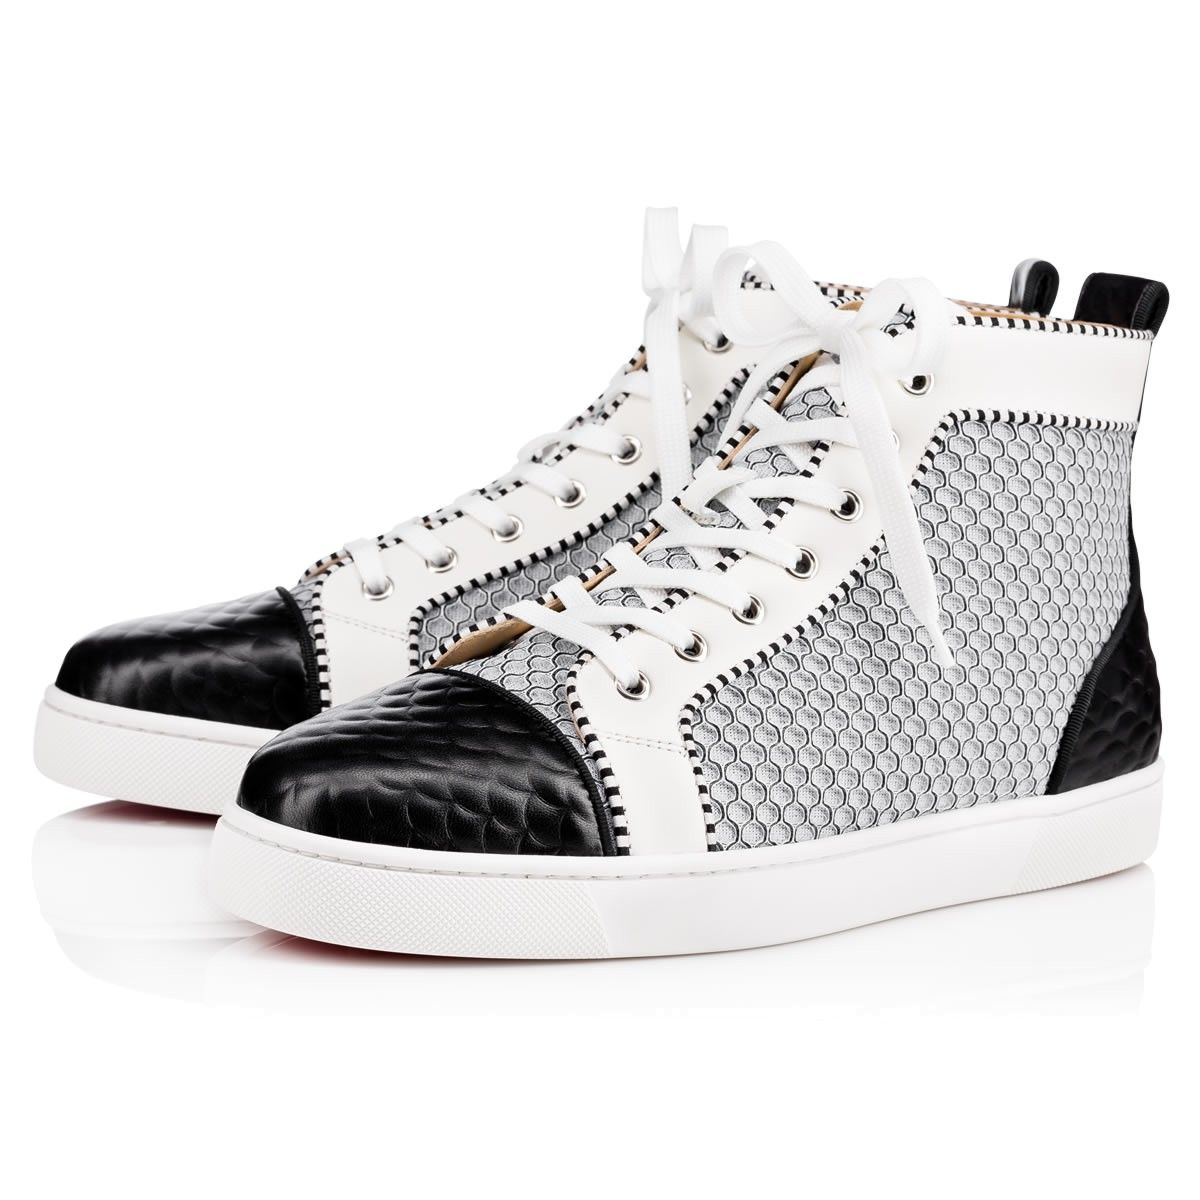 CHRISTIAN LOUBOUTIN Louis Orlato Men\u0027S Flat Version Black White Leather. # christianlouboutin #shoes #